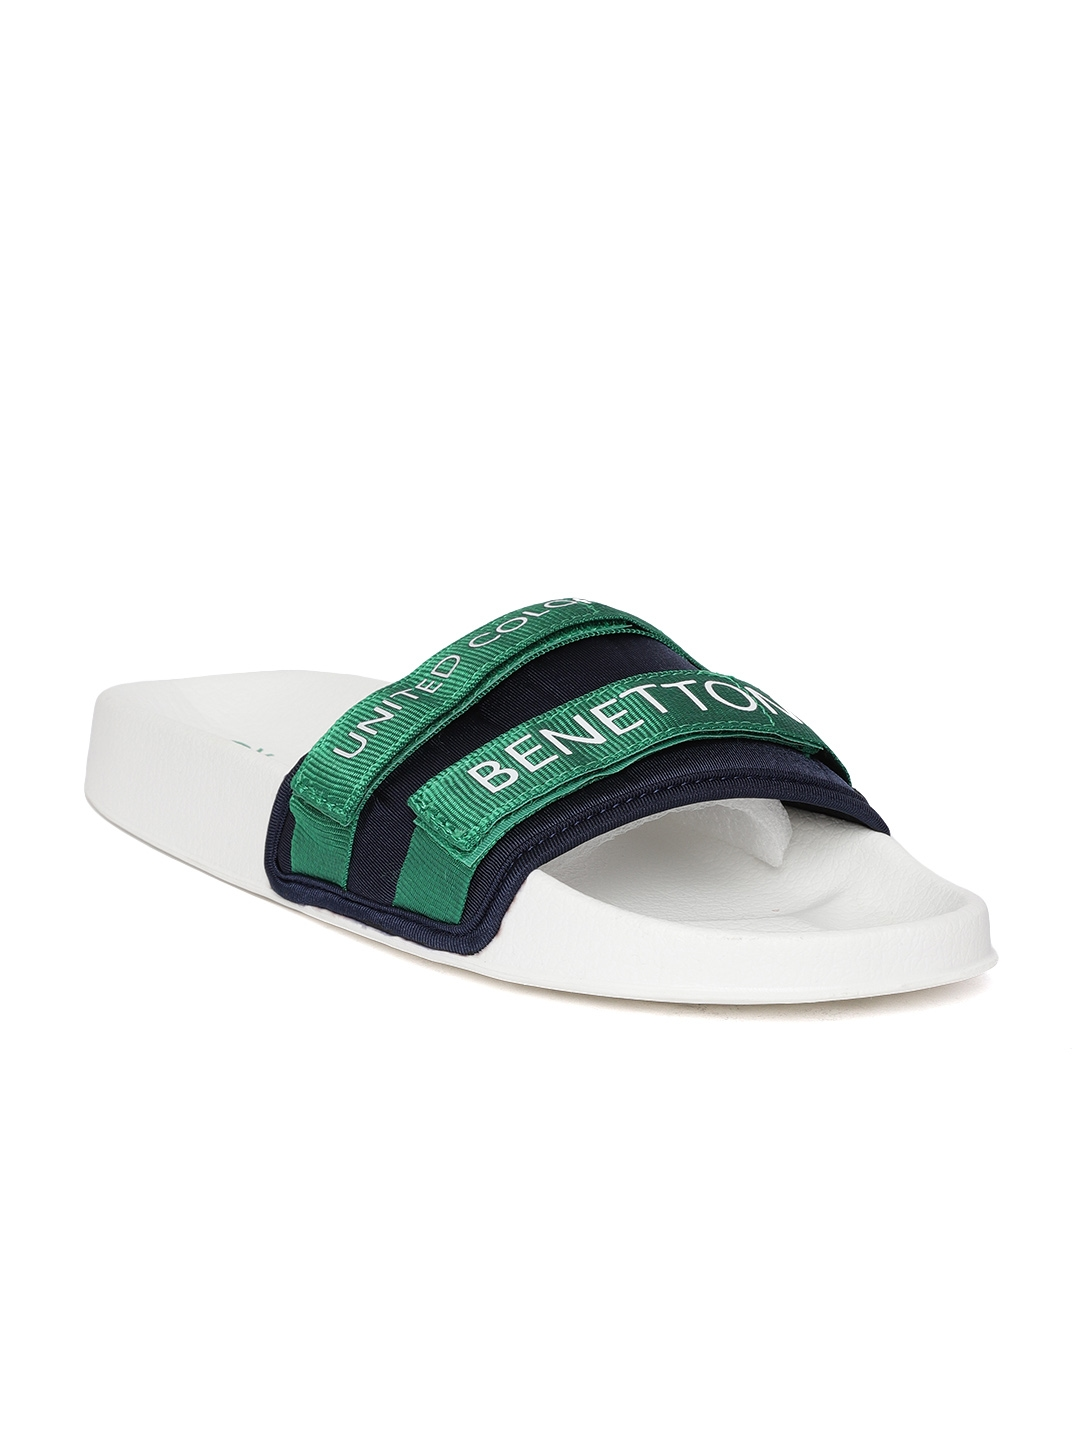 052c77858601 Buy United Colors Of Benetton Men Navy Blue   Green Printed Sliders ...